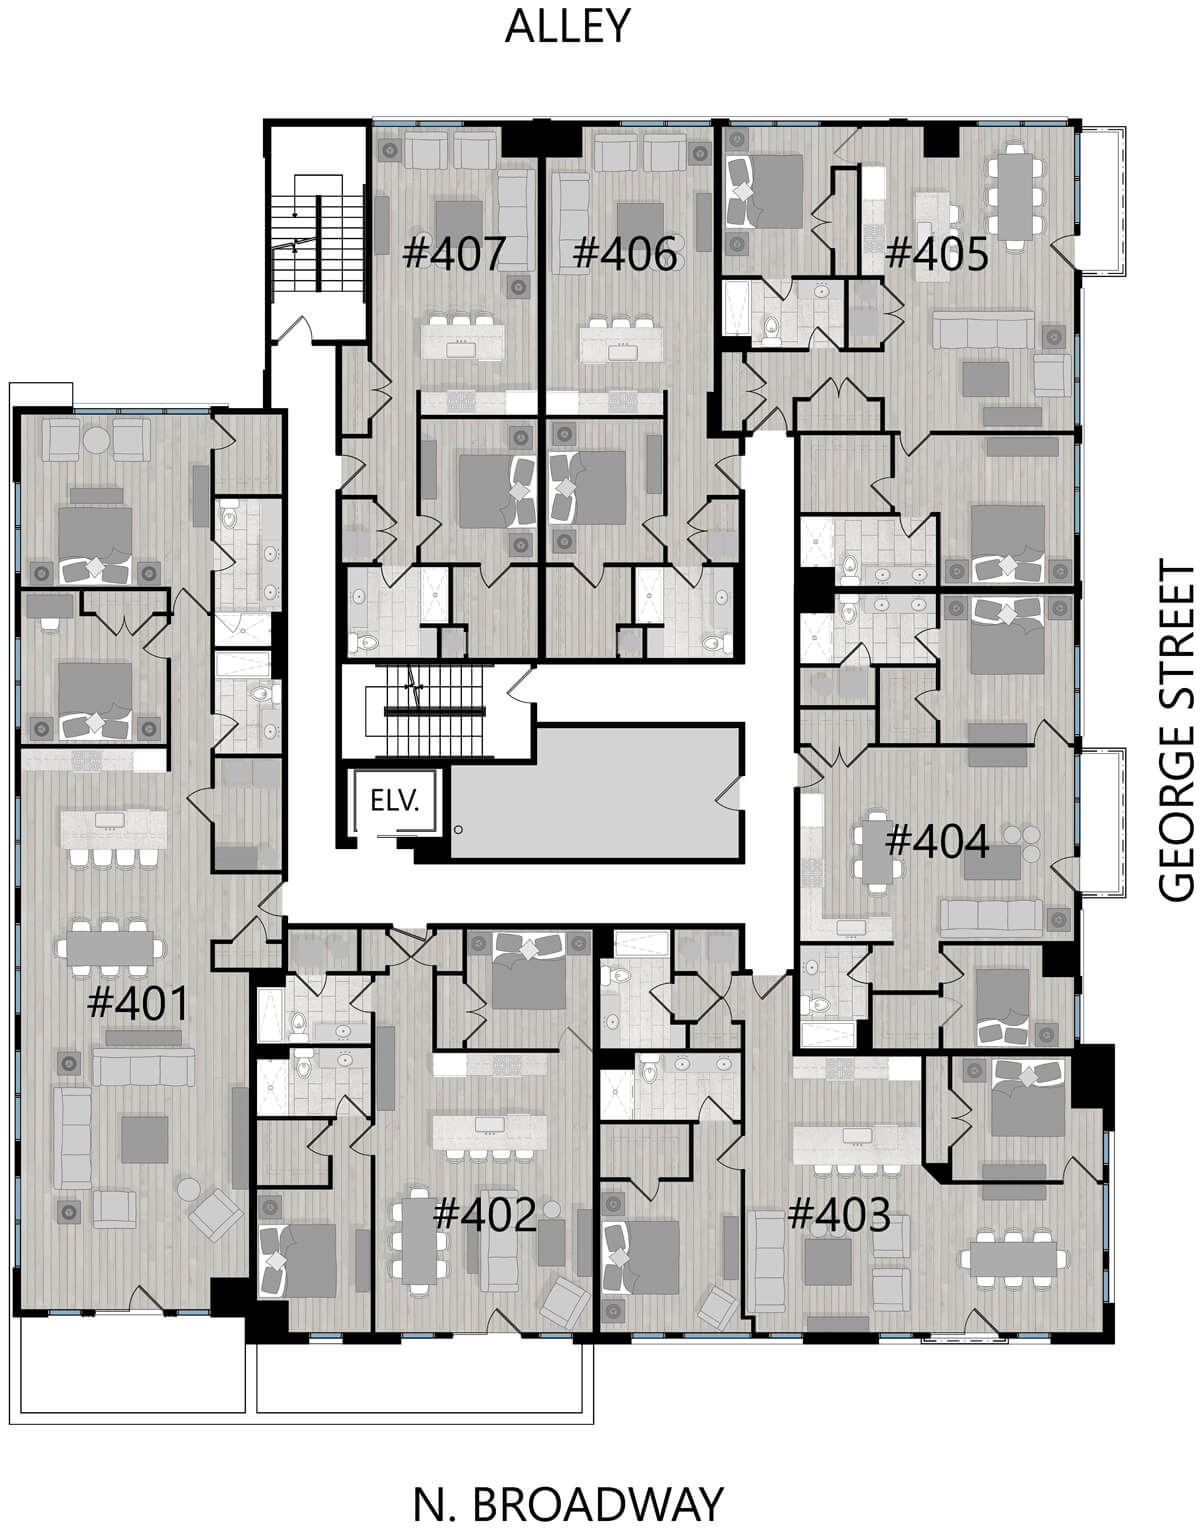 Fourth floor unit layout